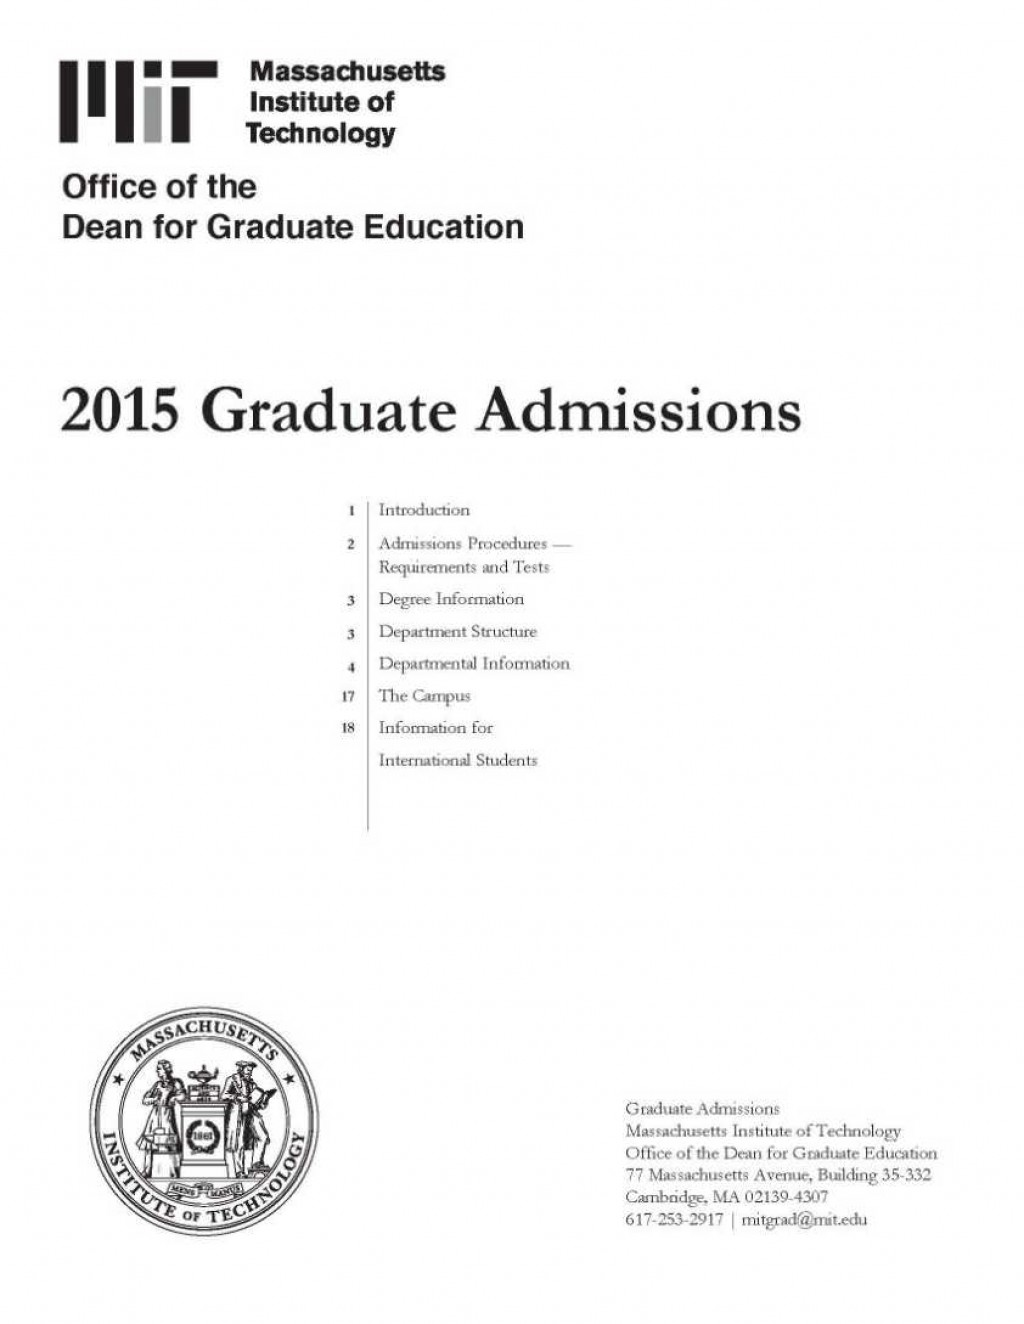 001 Essay Example Mit Application Essays Graduate Admissions Writing Sample Education Admission Deta Psychology Business Nursing School Samples Counseling Examples Free Stirring 2017 Best College Large